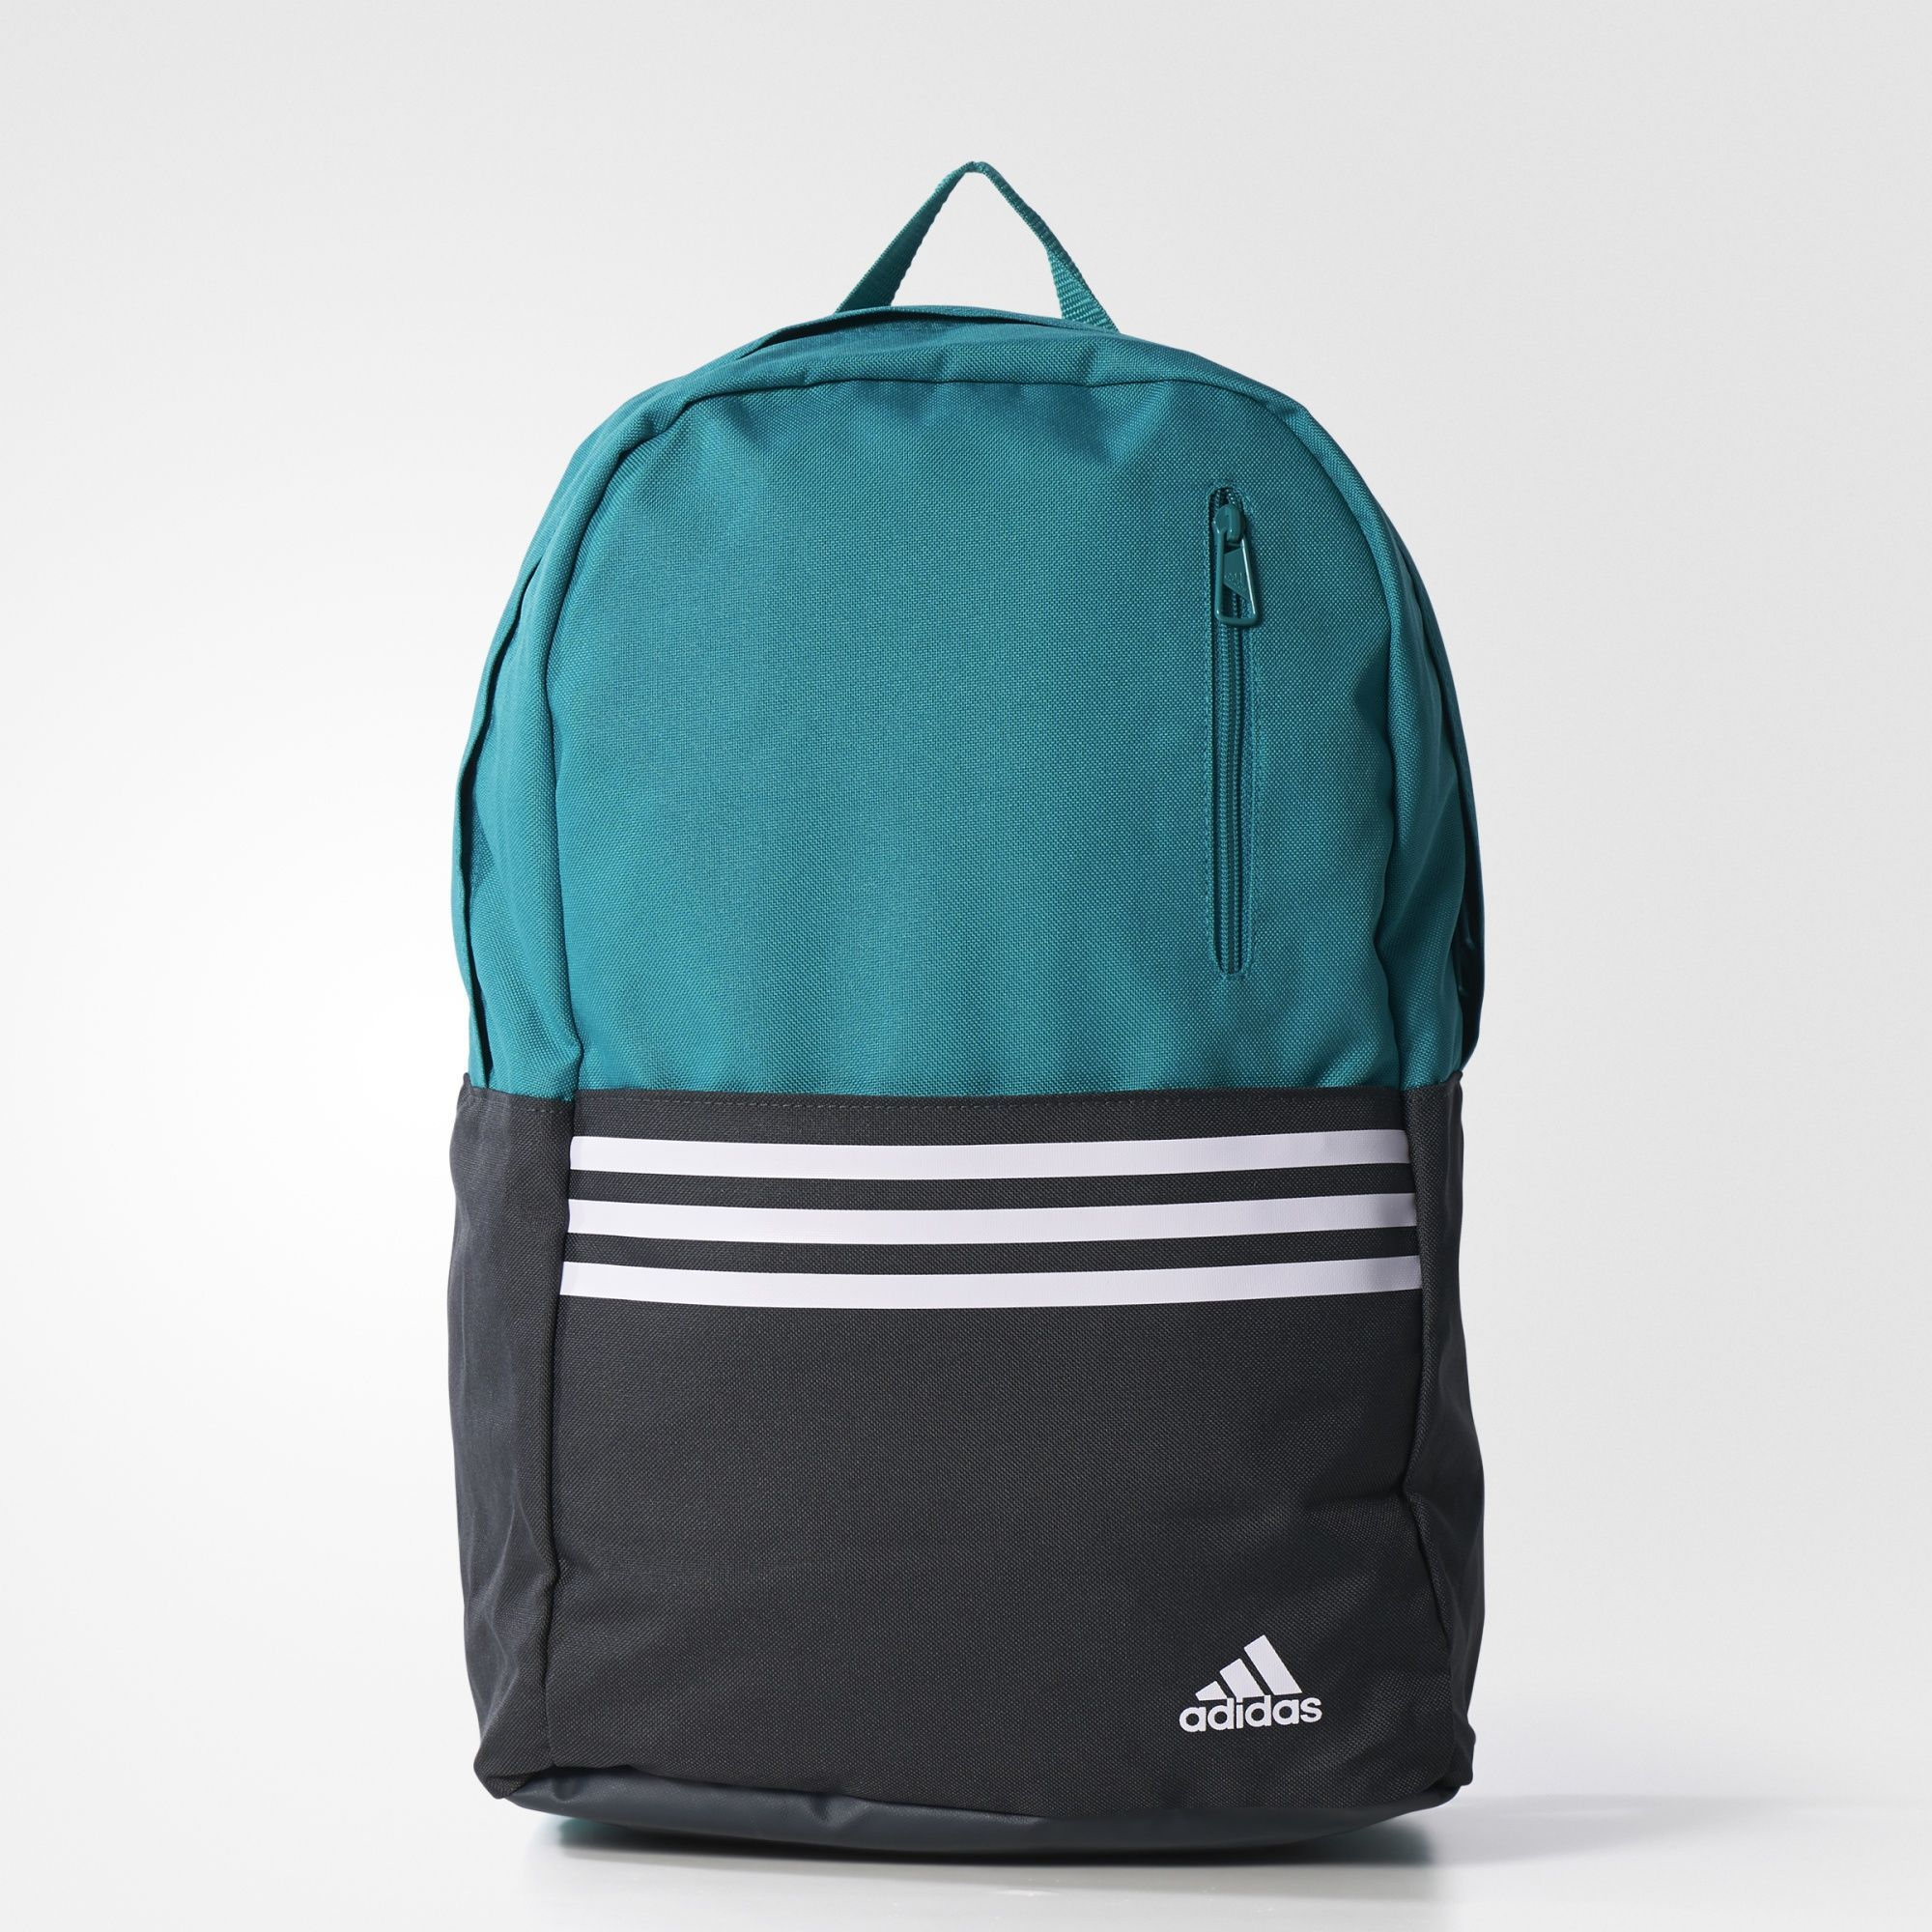 adidas mochila versatile 3s bags and accessories pinterest